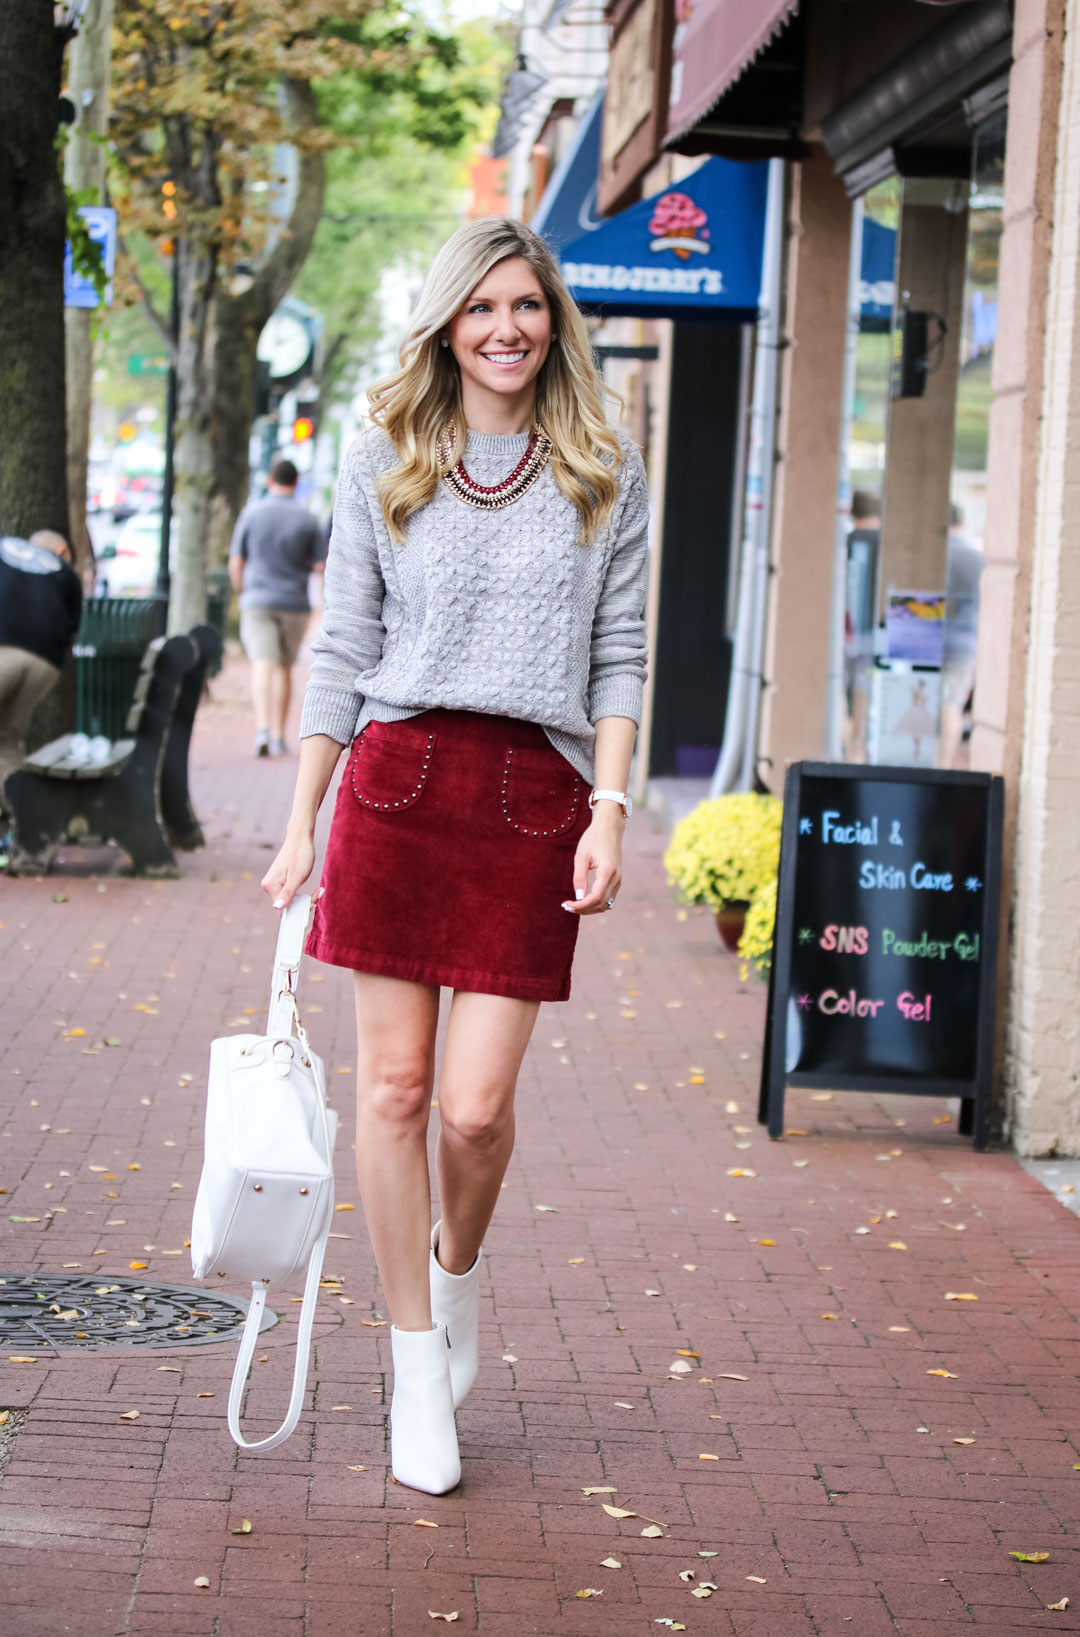 Velvet embellished skirt and gray sweater for fall